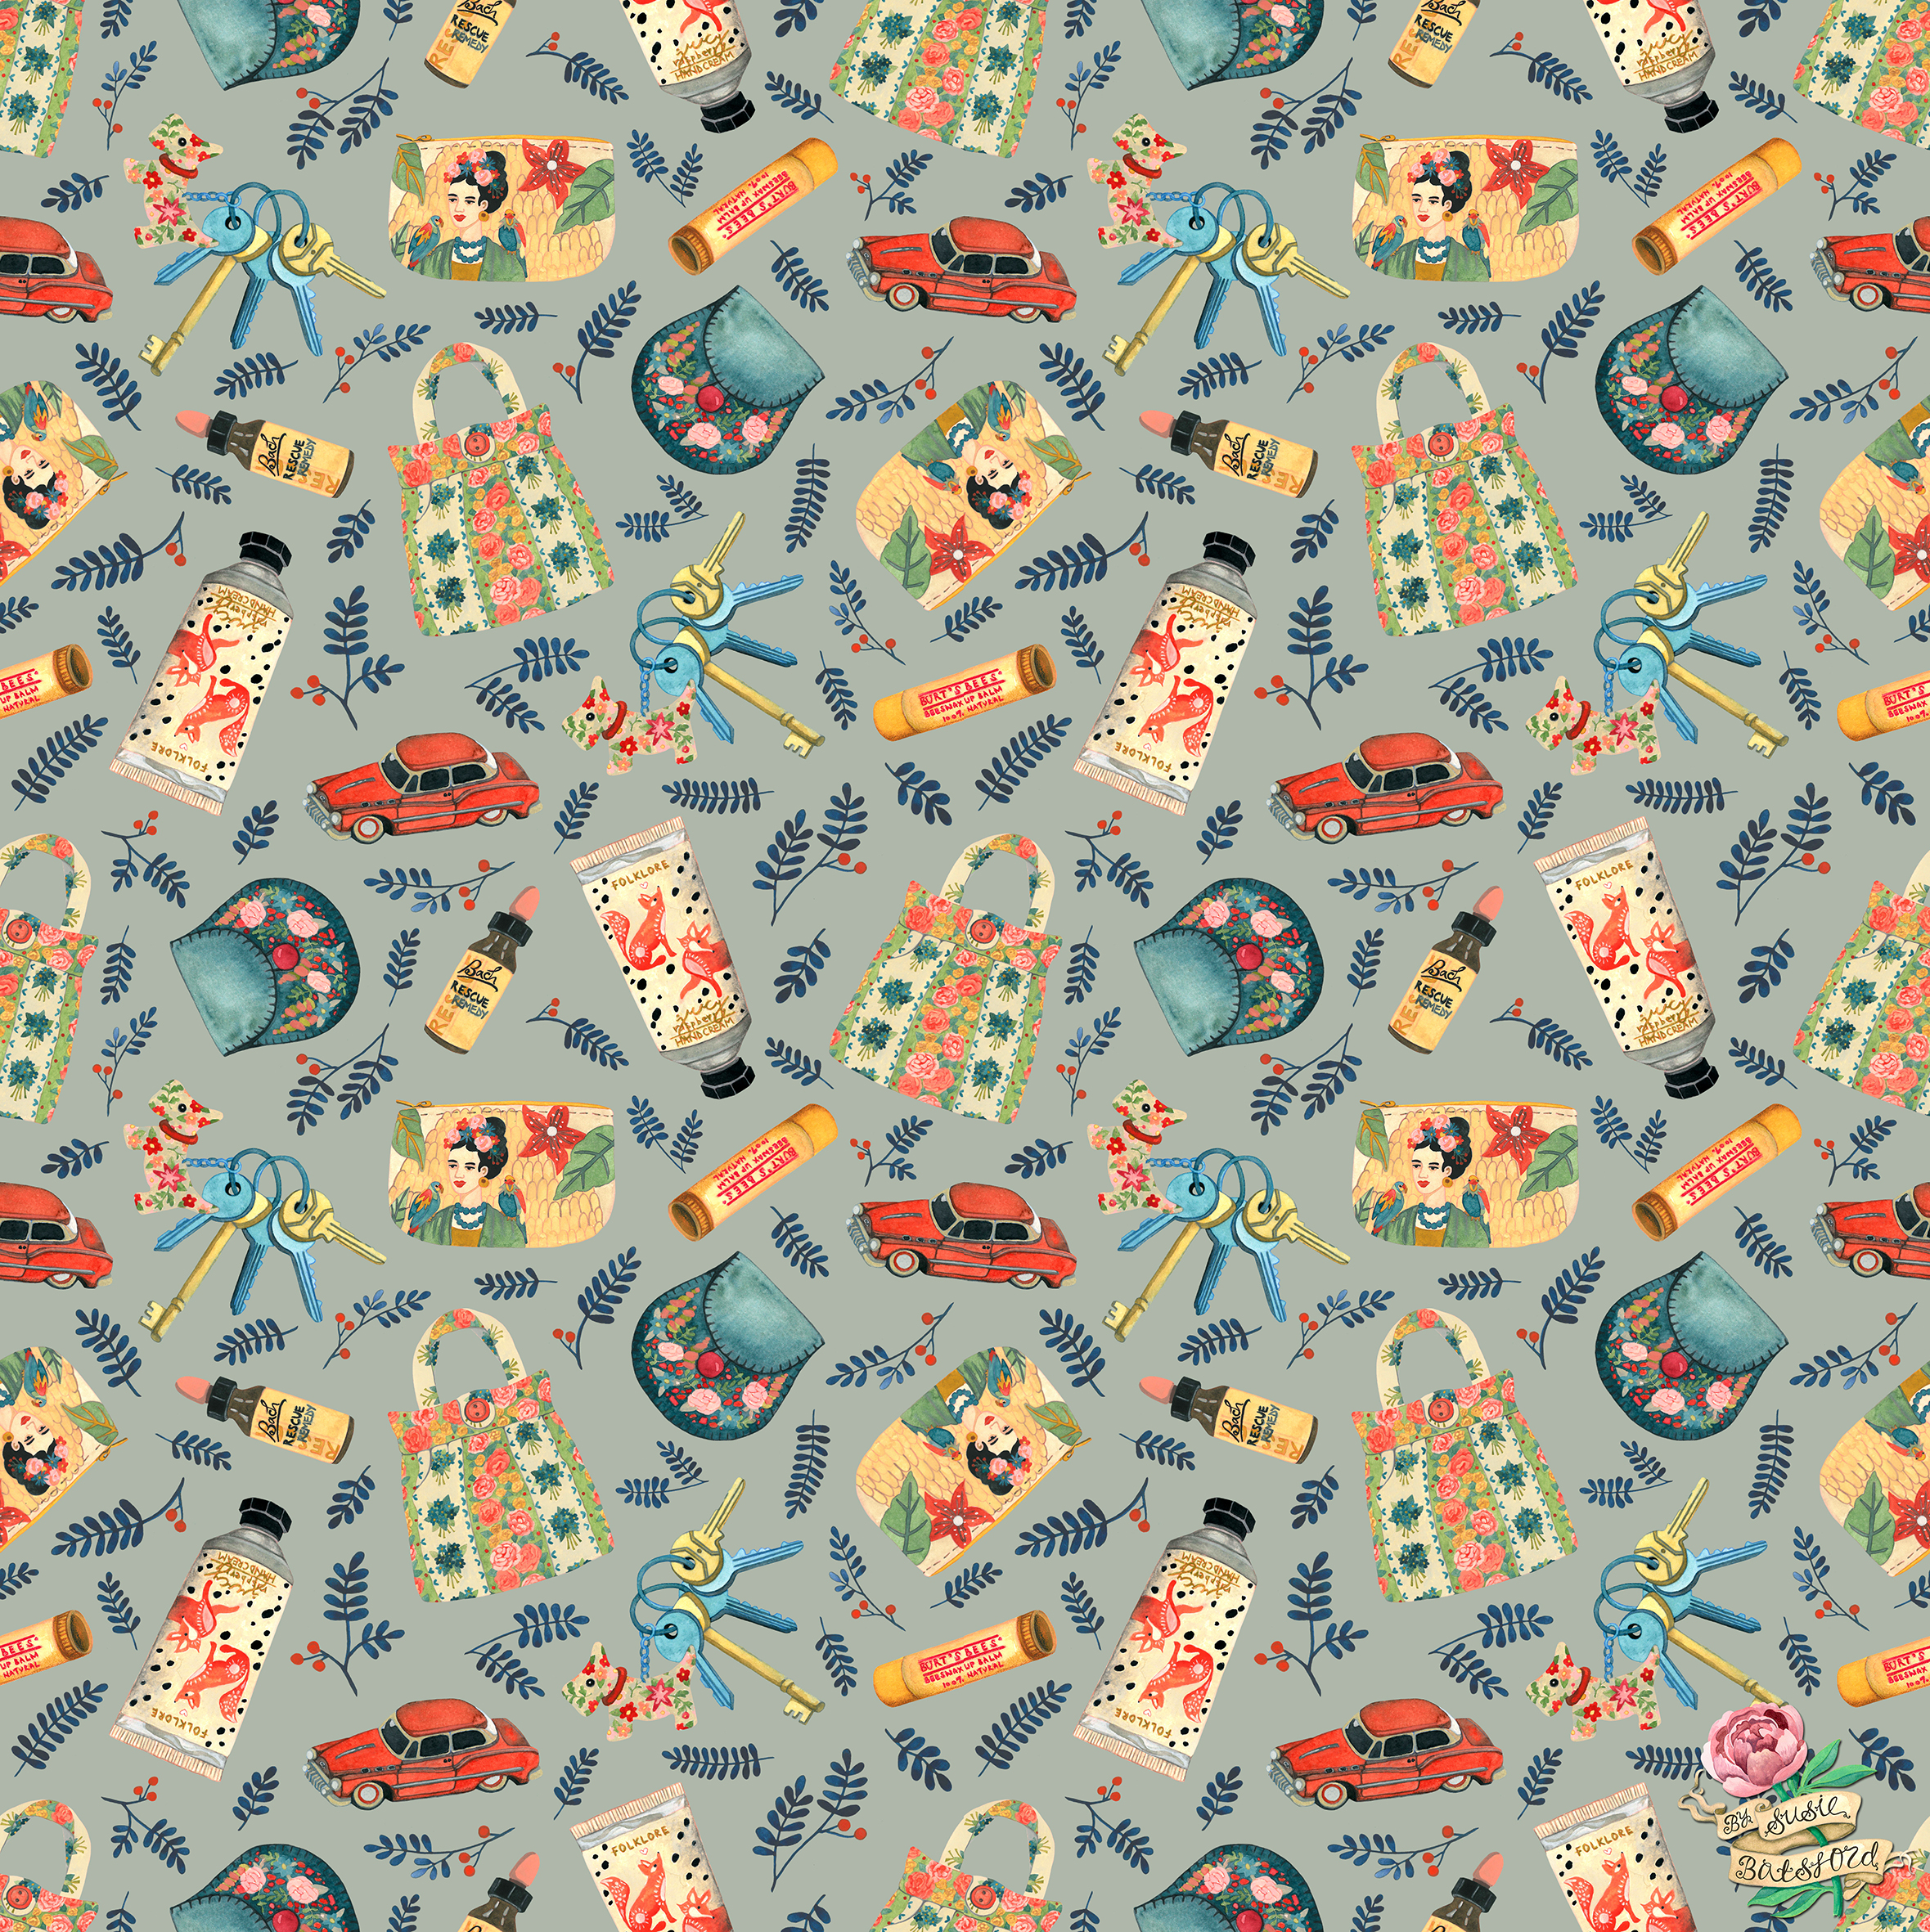 Mr.Bag.Pattern.Tile.Repeat.2.jpg